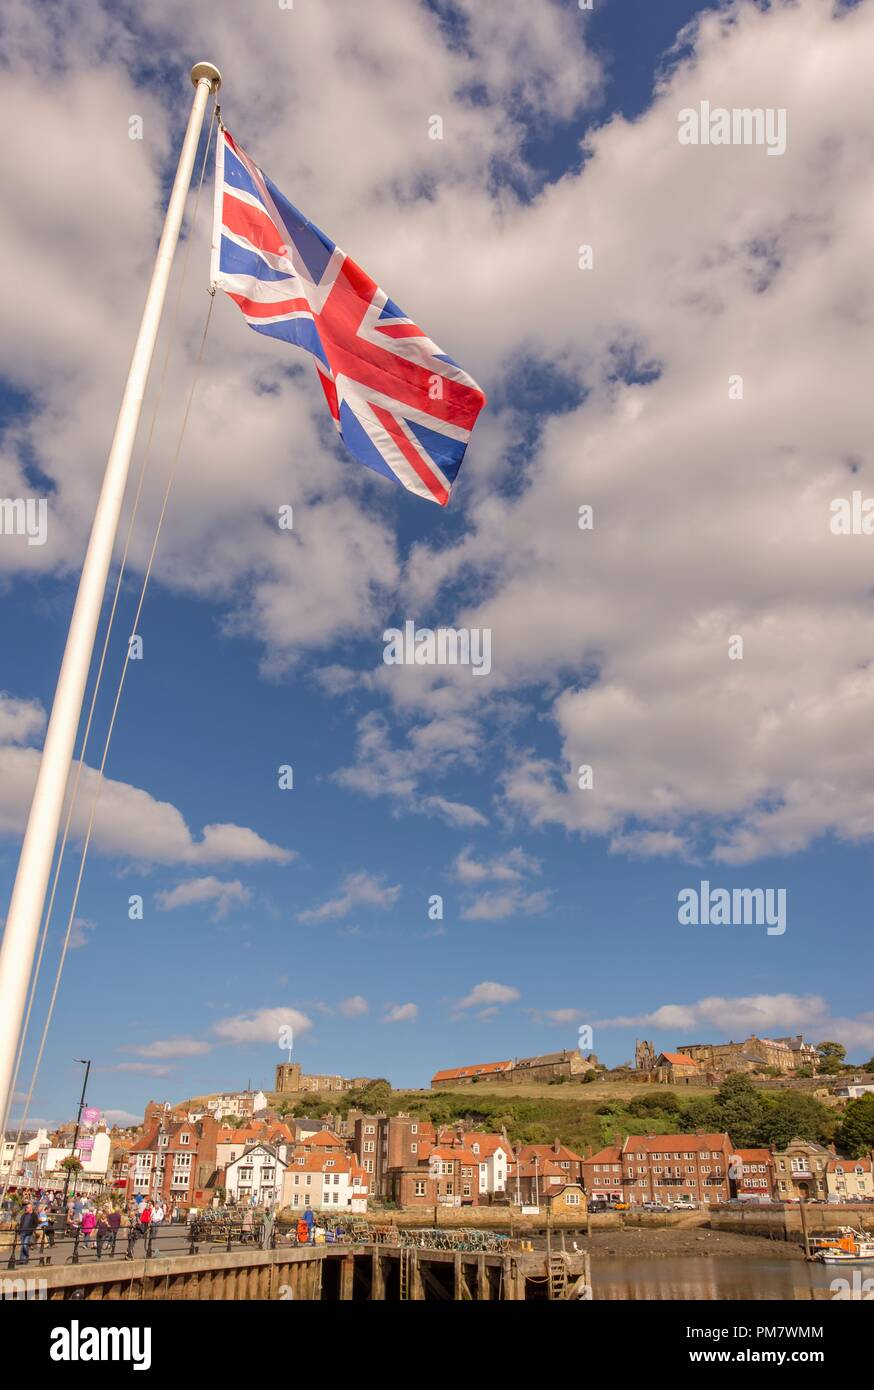 Whitby harbour and town.  The Union flag flies over the scene against a blue sky with dramatic clouds. Stock Photo